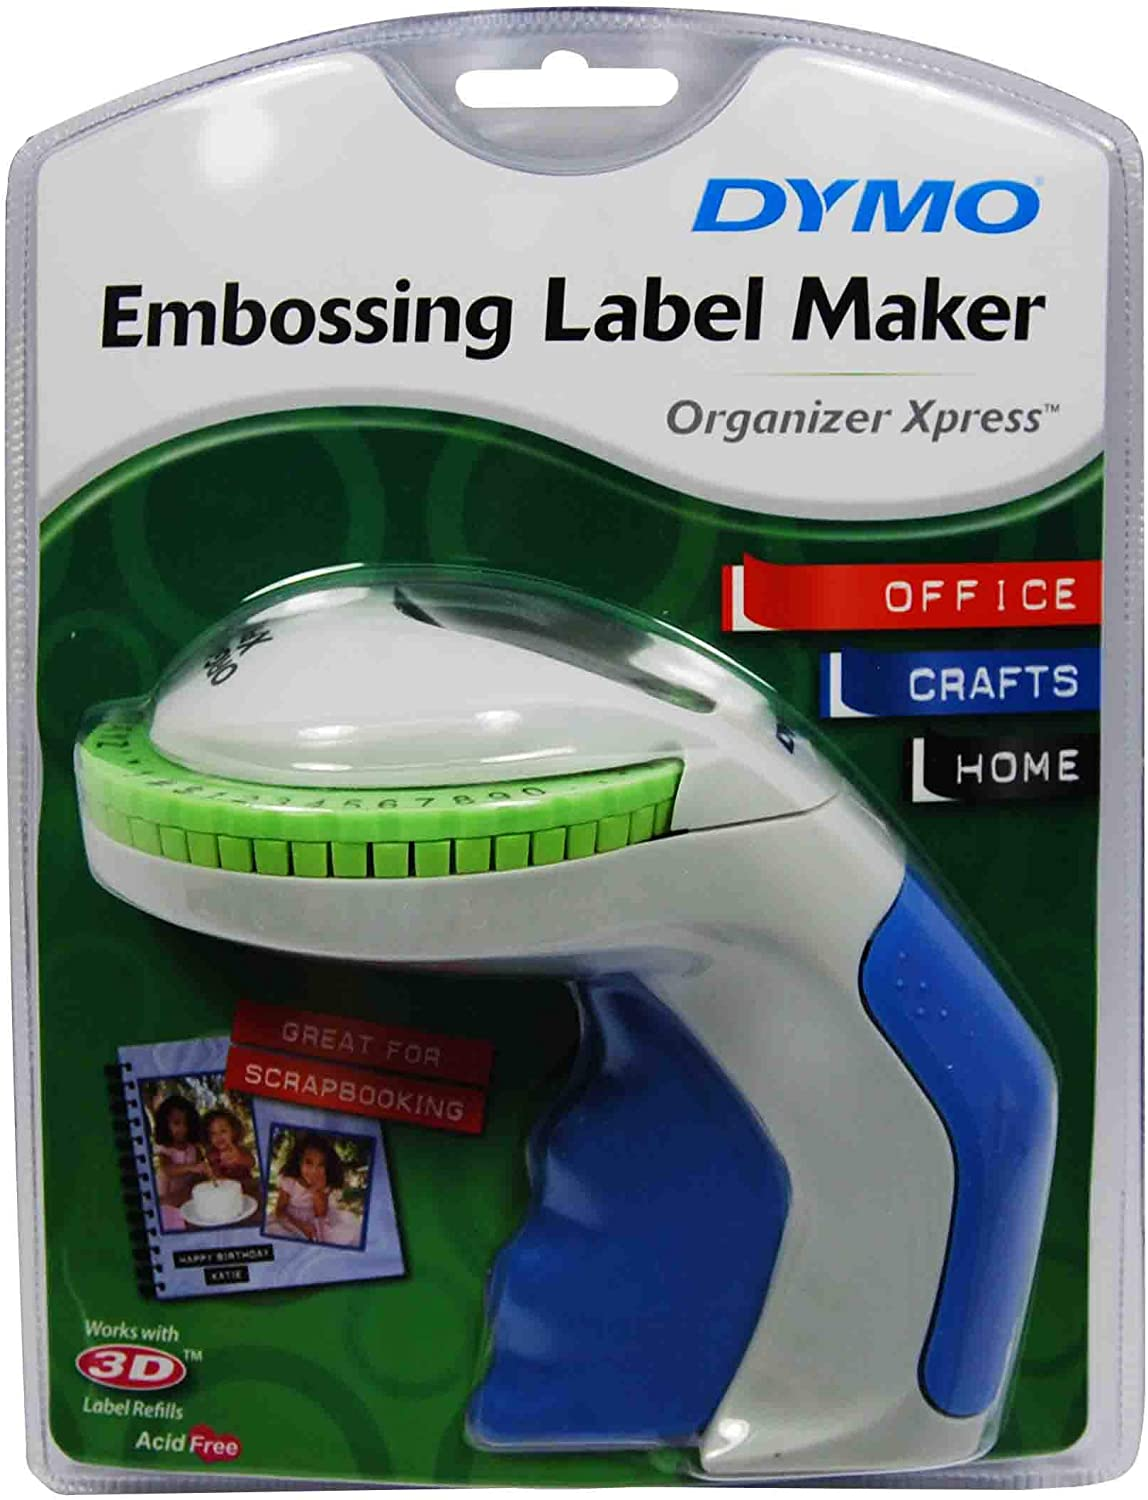 DYMO Organizer Xpress Handheld Embossing Label Maker (12965) : Label Applicators : Office Products